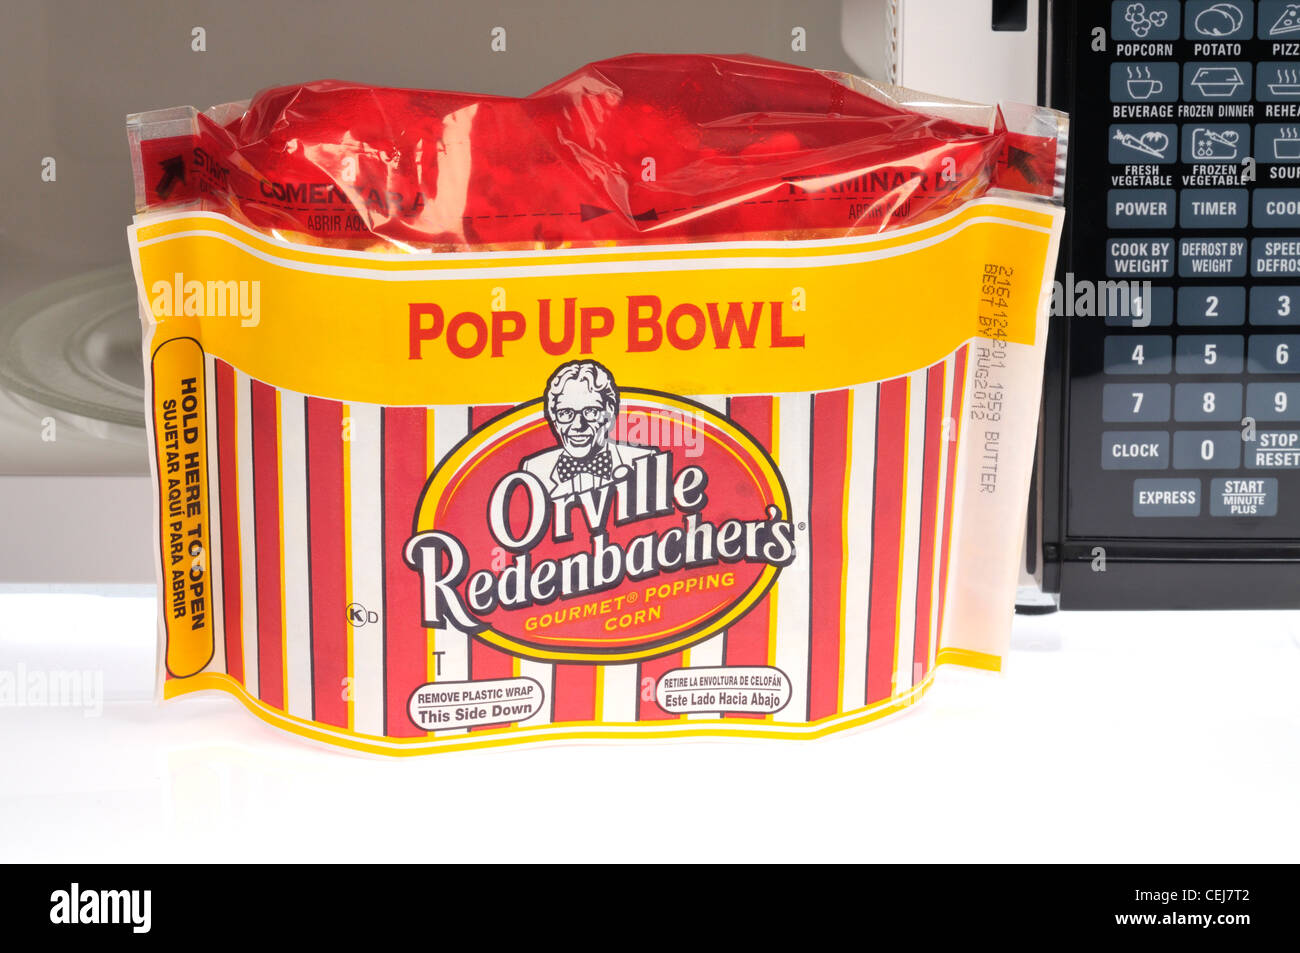 https www alamy com stock photo popup bowl of orville redenbacher microwave popcorn in front of microwave 43427218 html